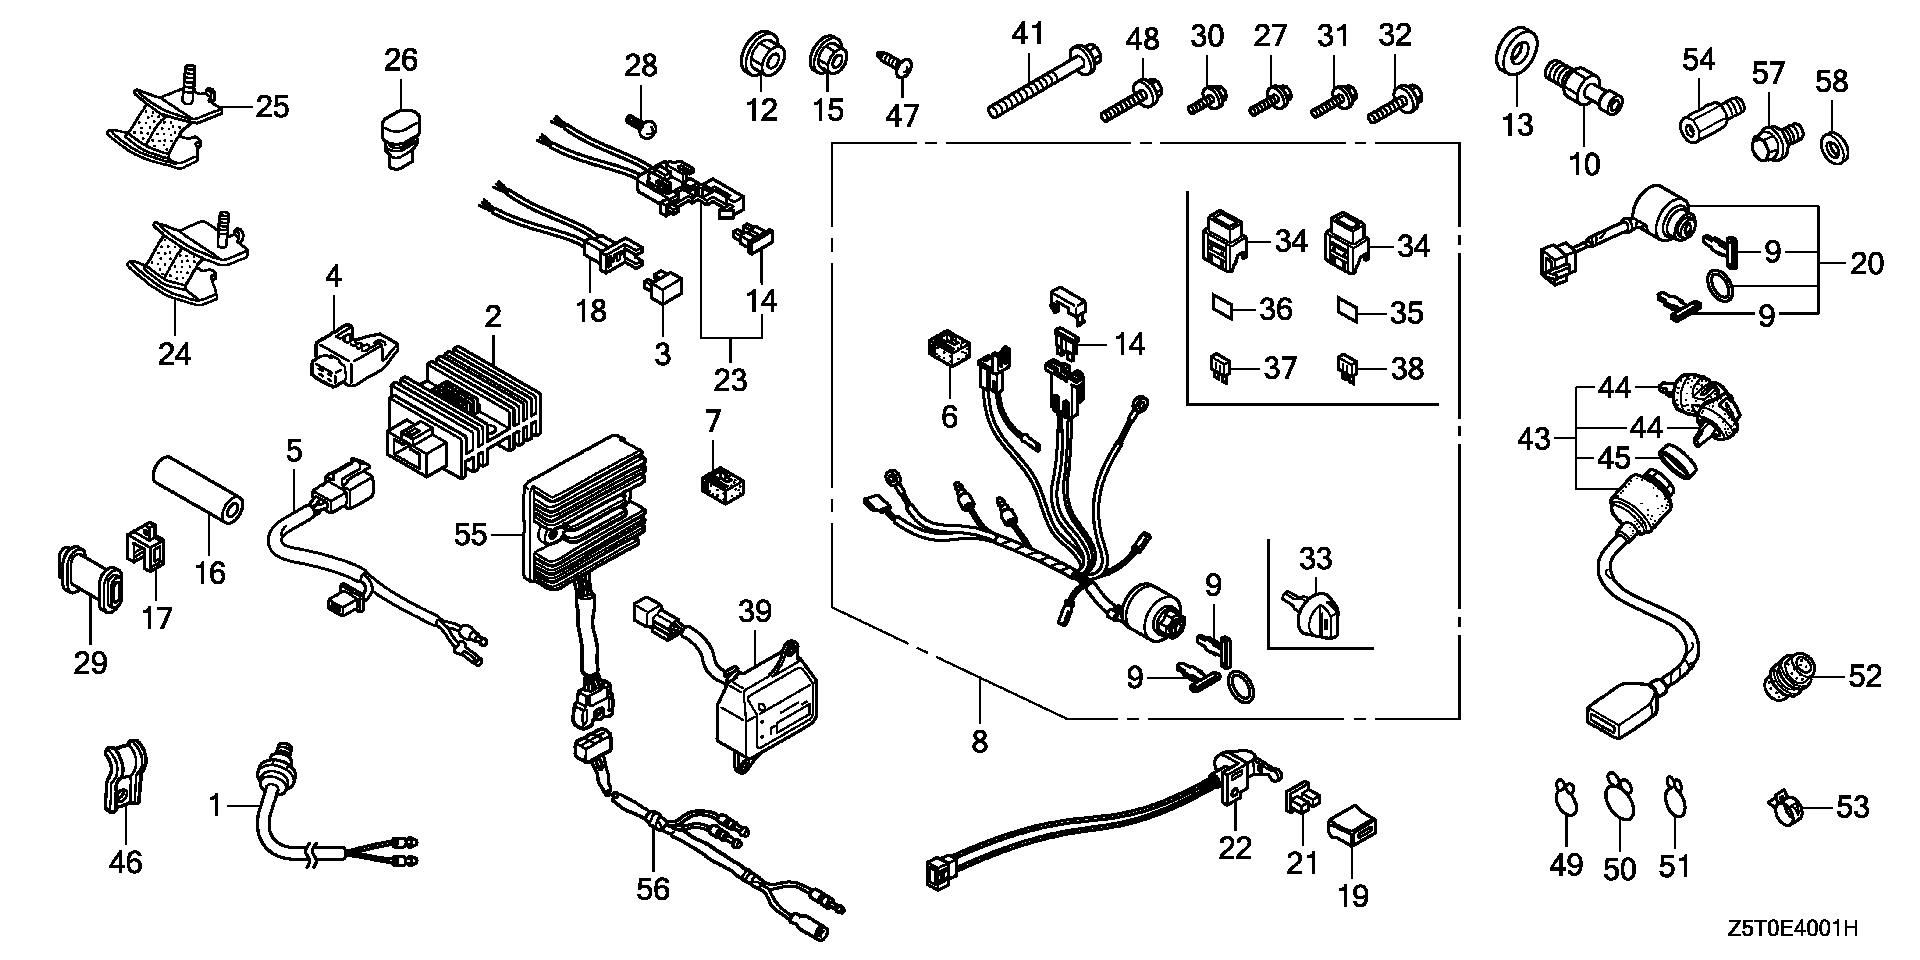 OTHER PARTS (COMBINATION SWITCH)